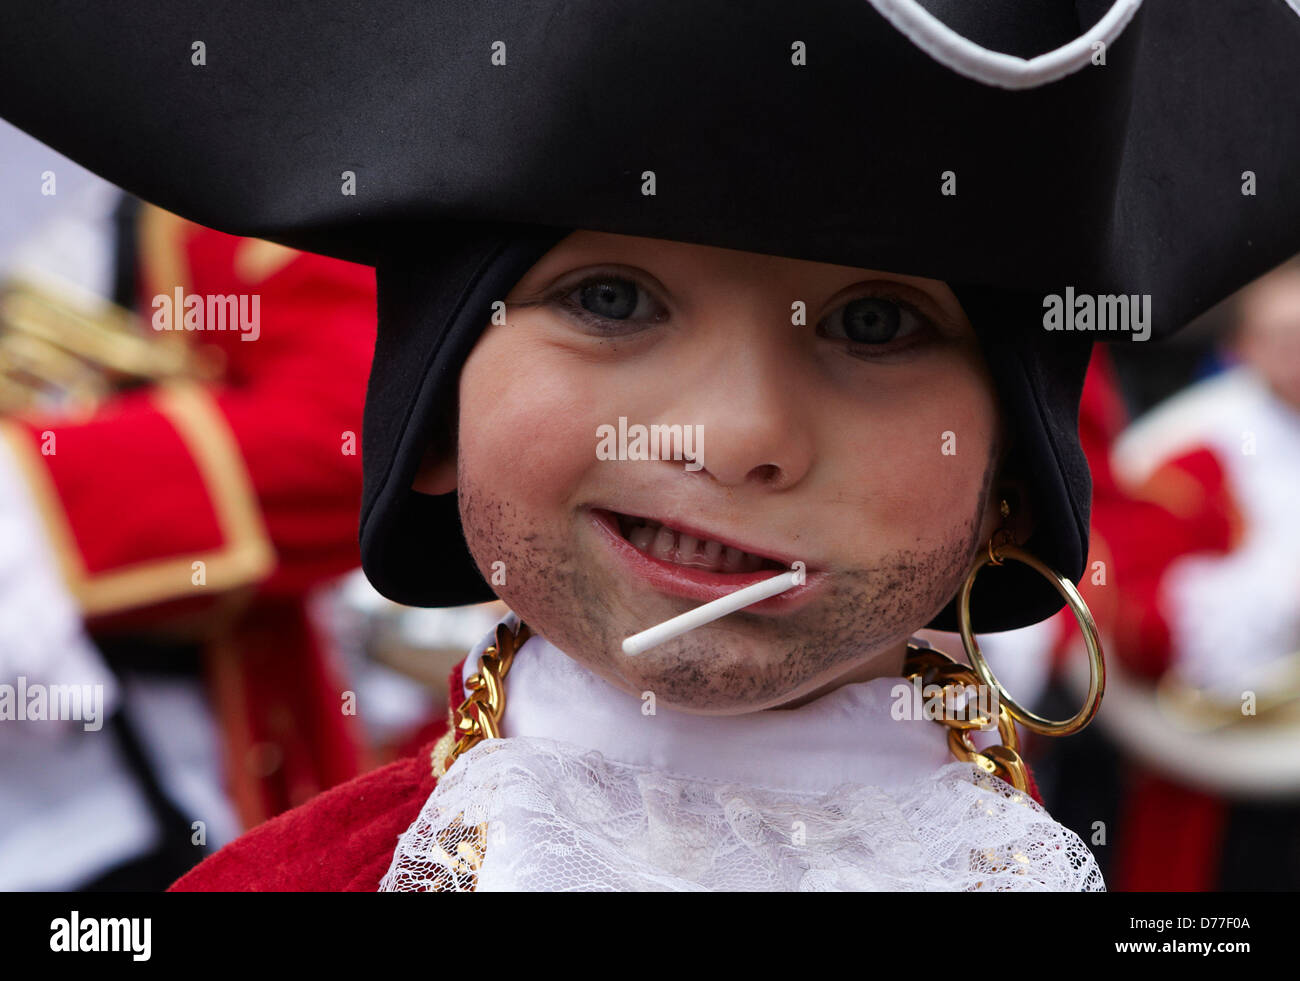 Belgium Walloonia Liege province Stavelot city laetare carnival child's portrait - Stock Image